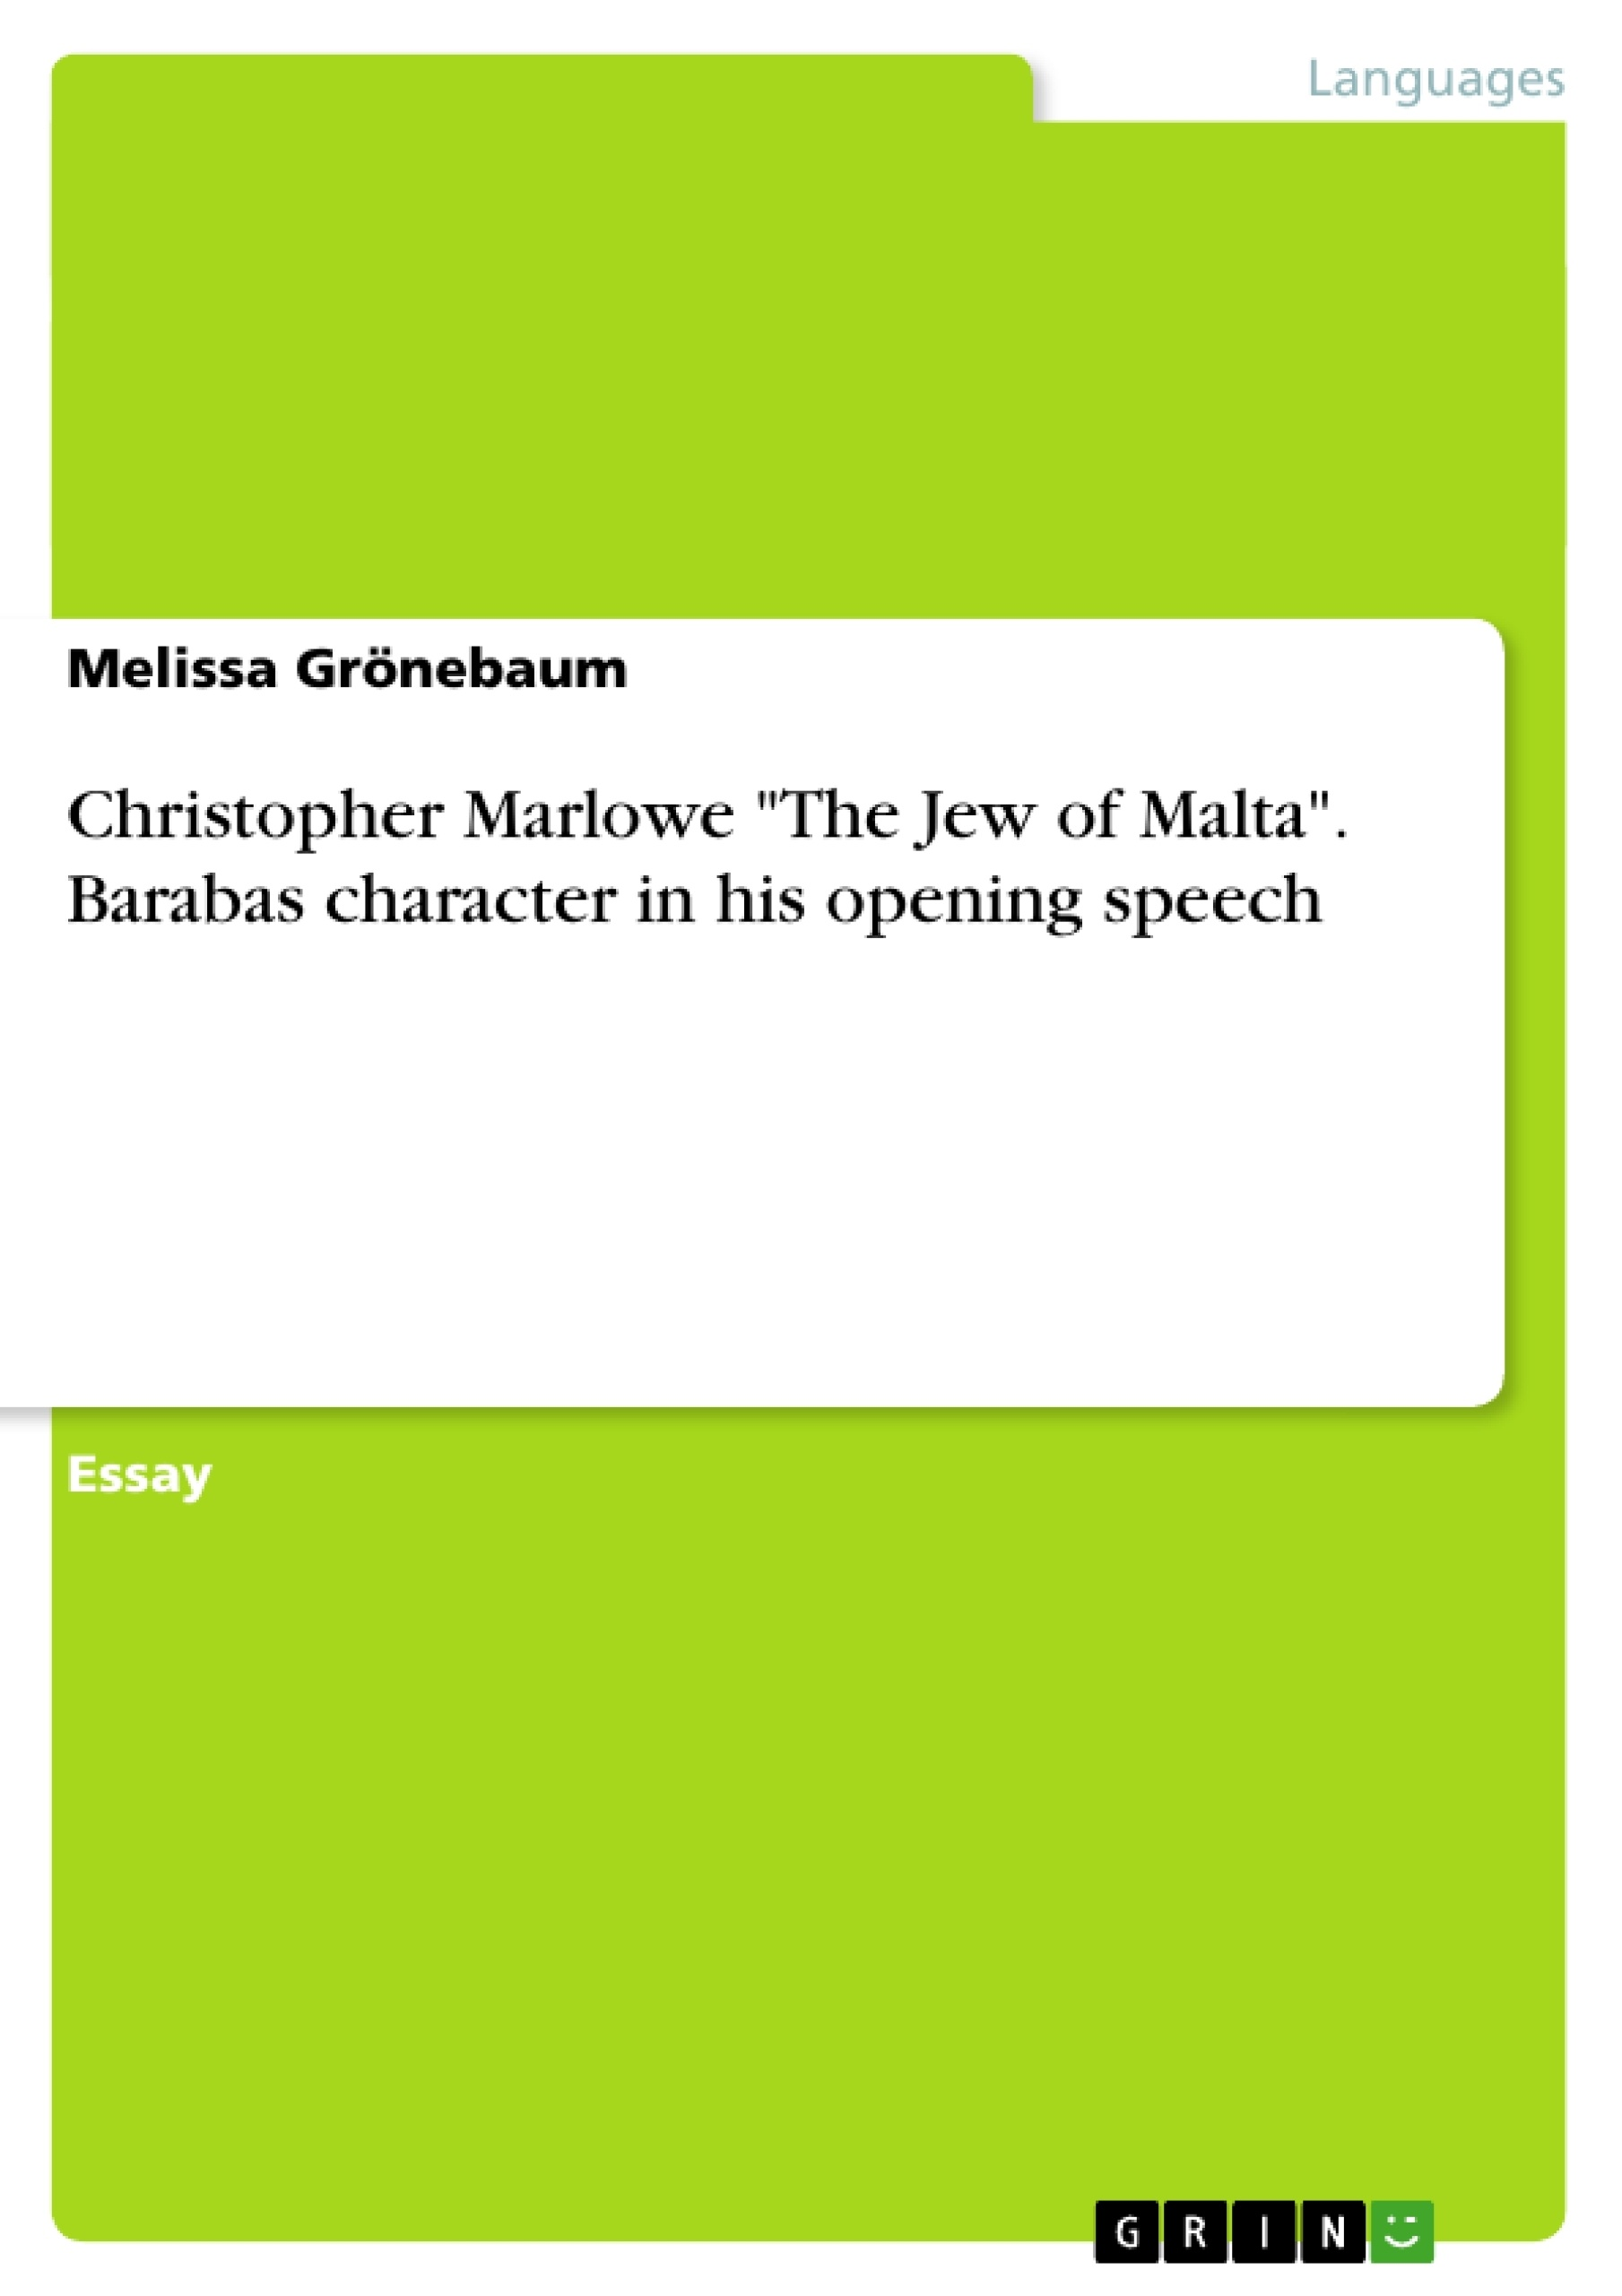 """Title: Christopher Marlowe """"The Jew of Malta"""". Barabas character in his opening speech"""